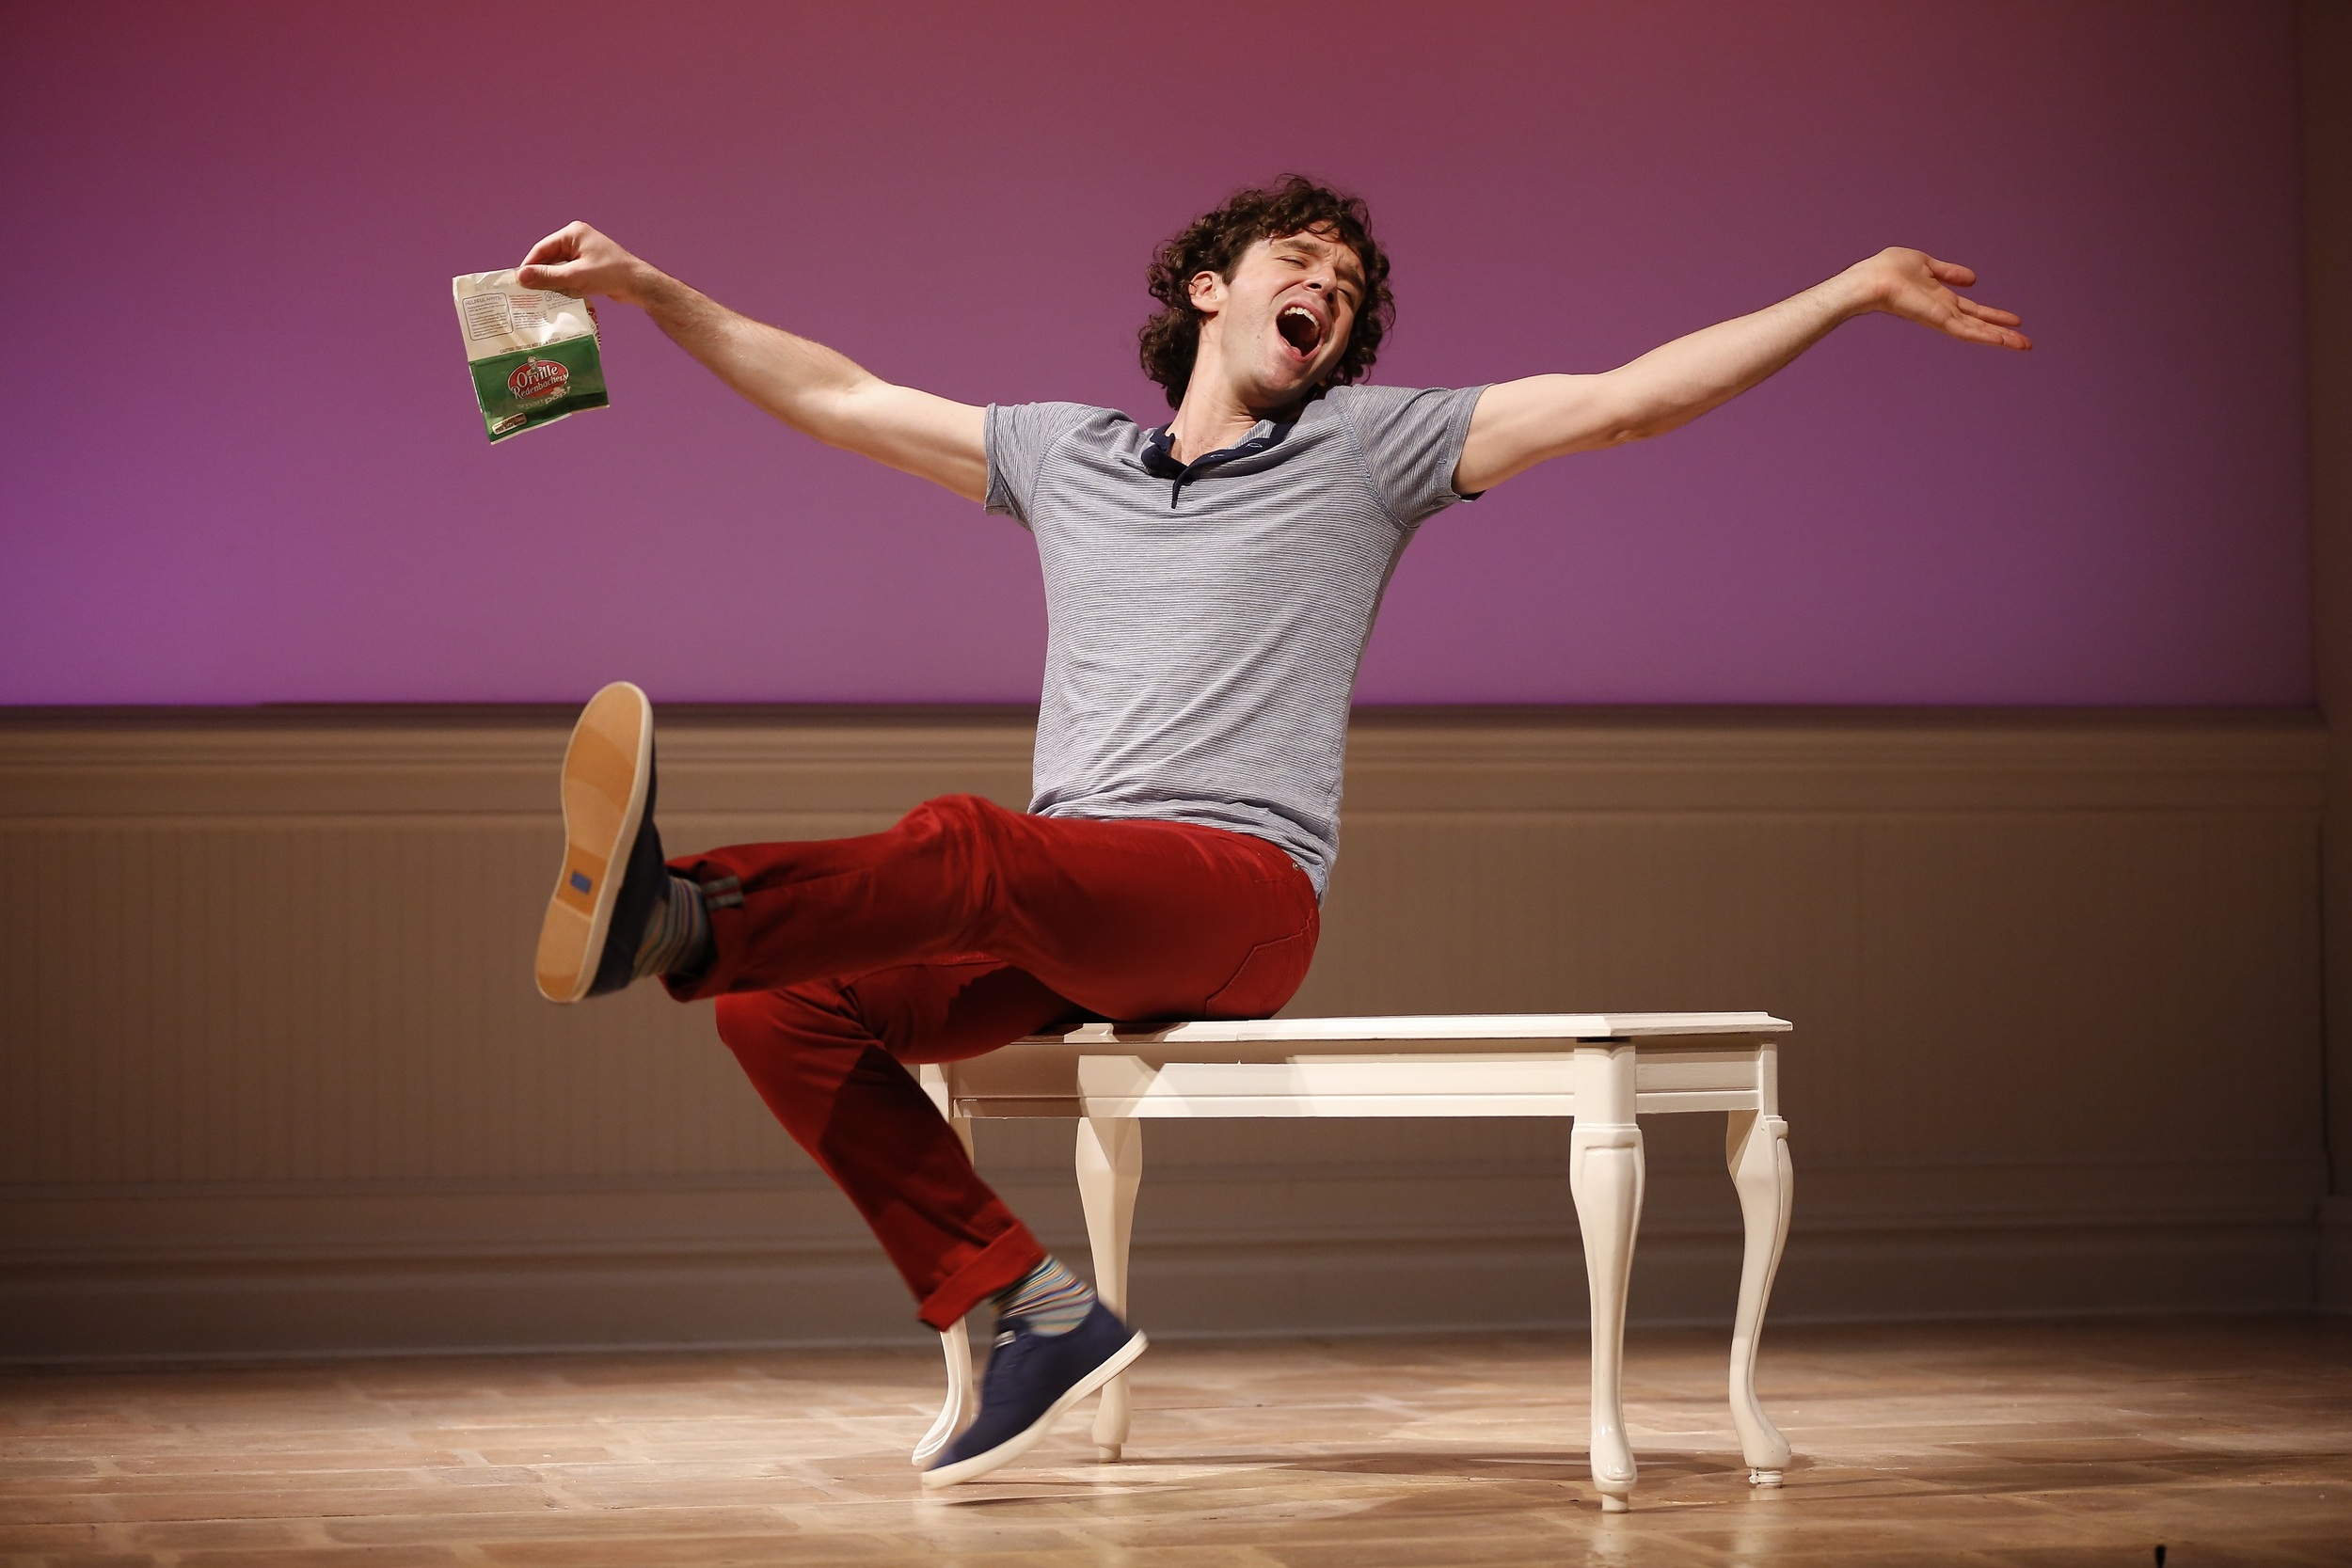 """Michael Urie in """"Buyer & Cellar,"""" written by Jonathan Tolins, and directed by Stephen Brackett, at Westport Country Playhouse, now playing through July 3. (203) 227-4177. www.westportplayhouse.org   Photo by Carol Rosegg"""